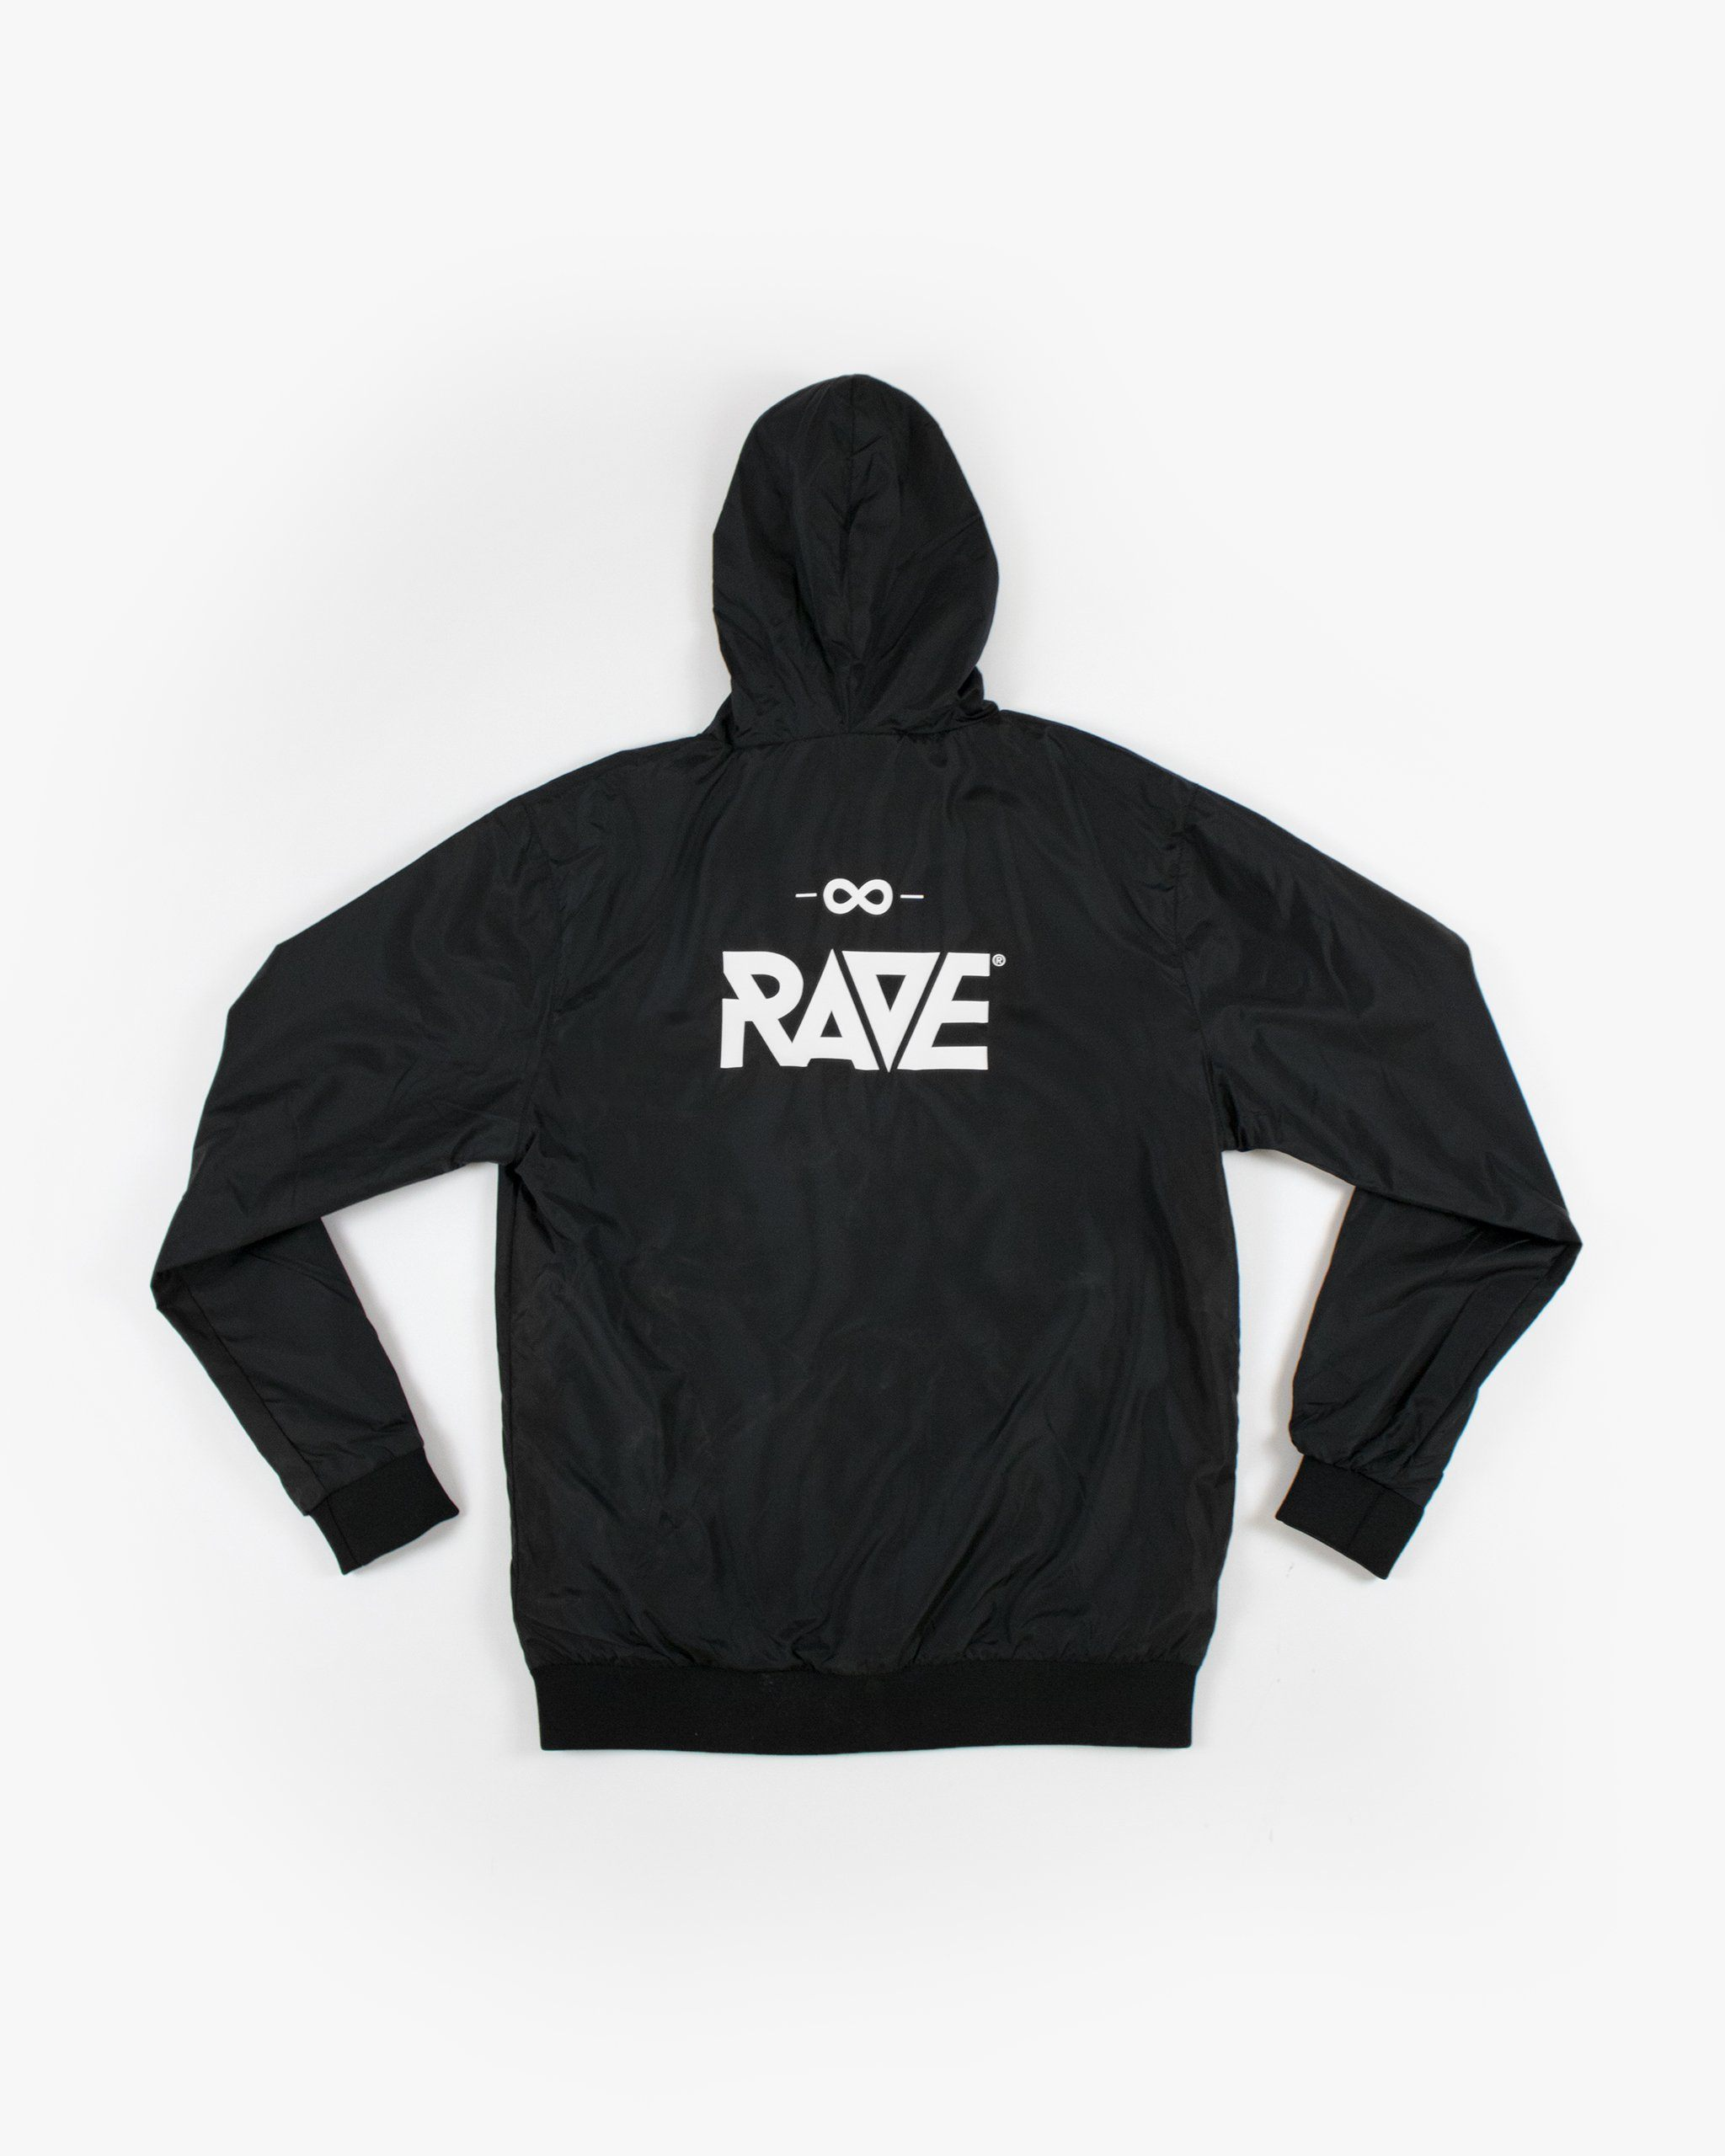 Rave windbreaker for techno festivals and raves